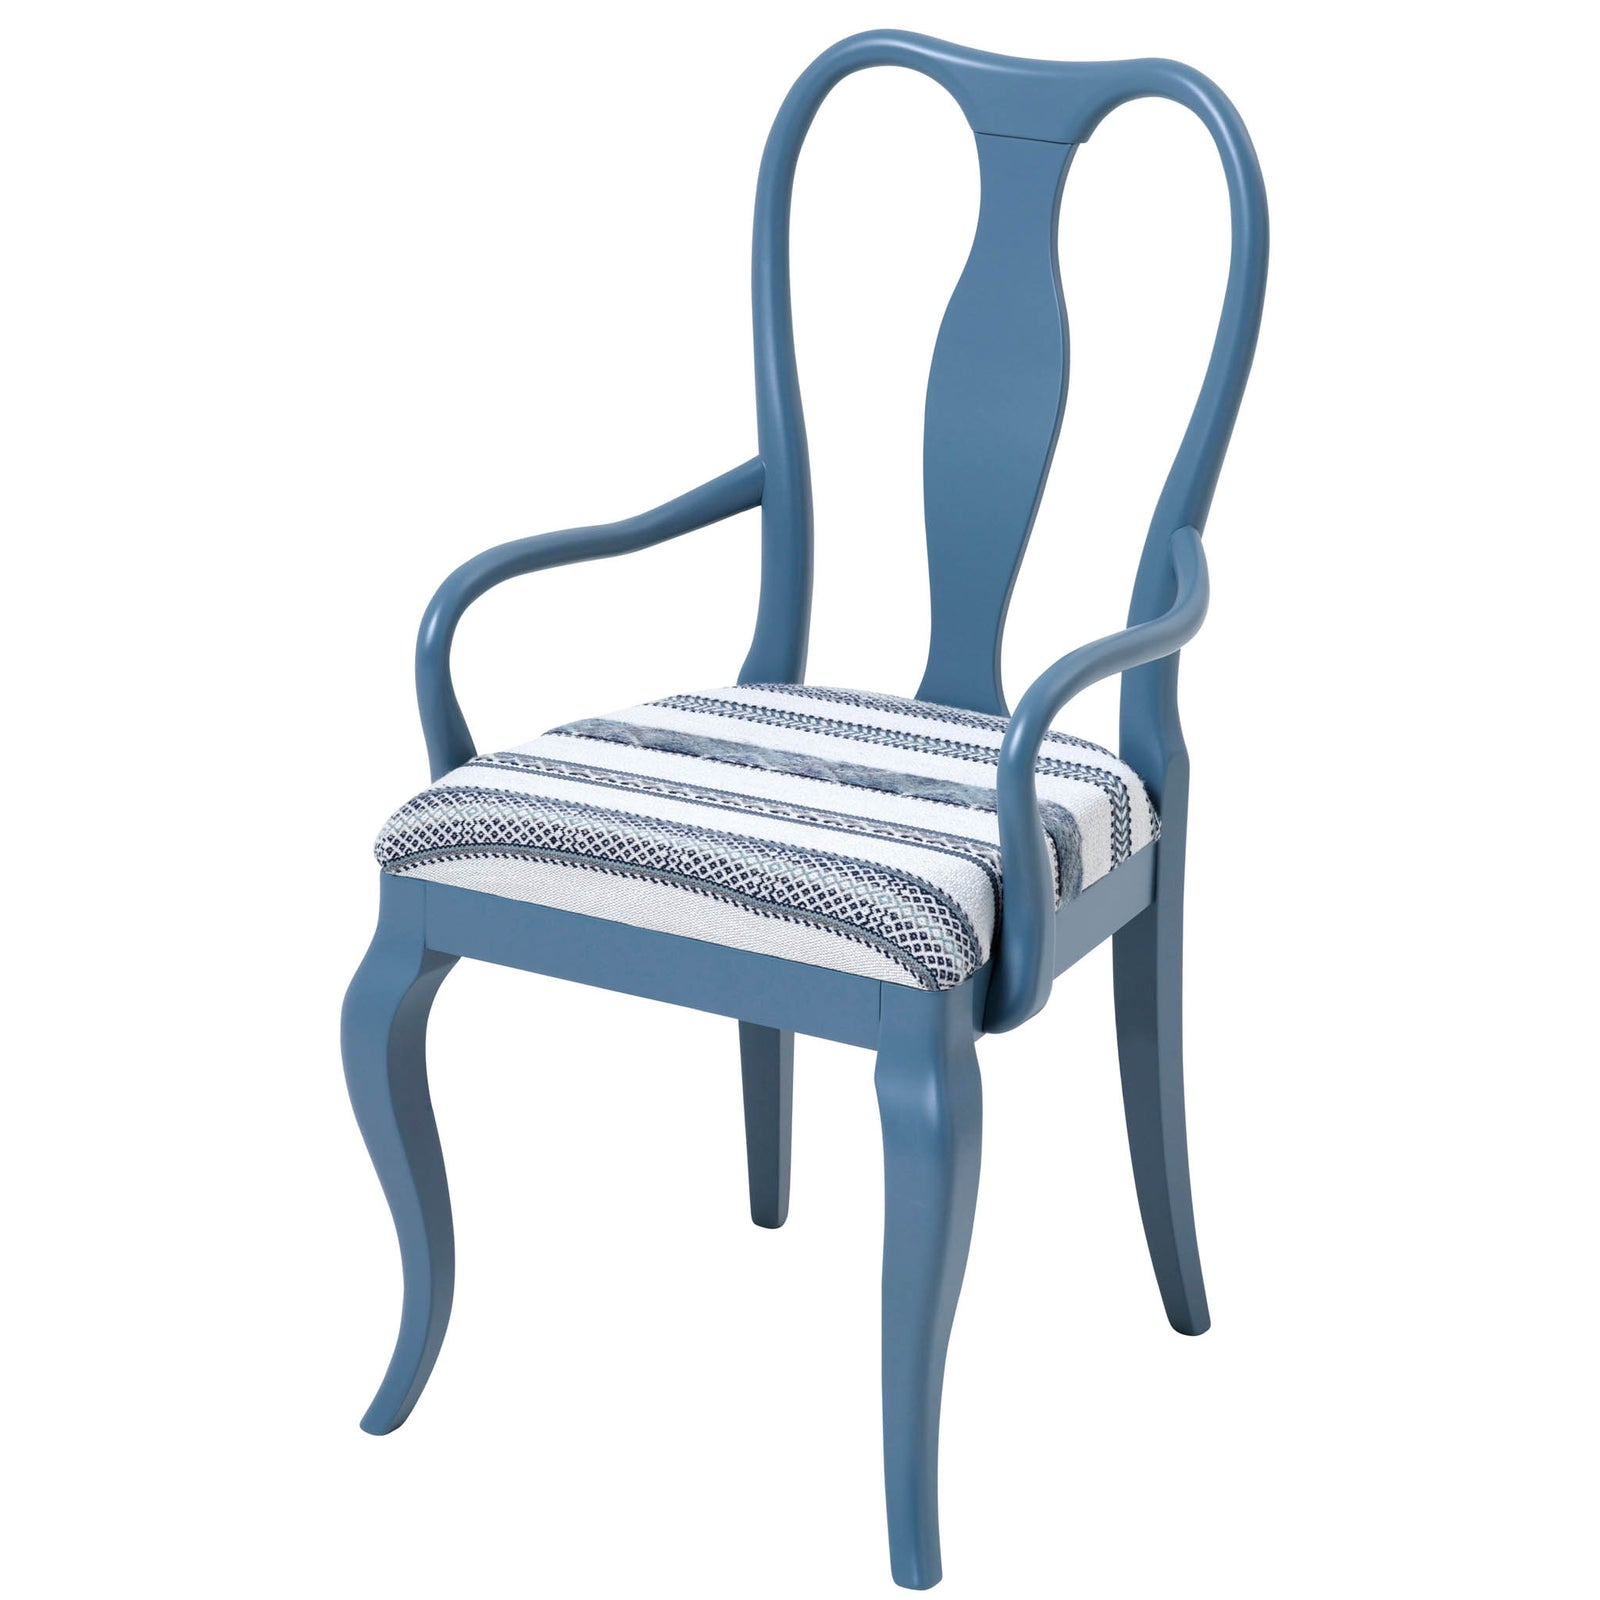 The Marco Chair Upholstered in the stunning Woven Ribbon by Kit Kemp